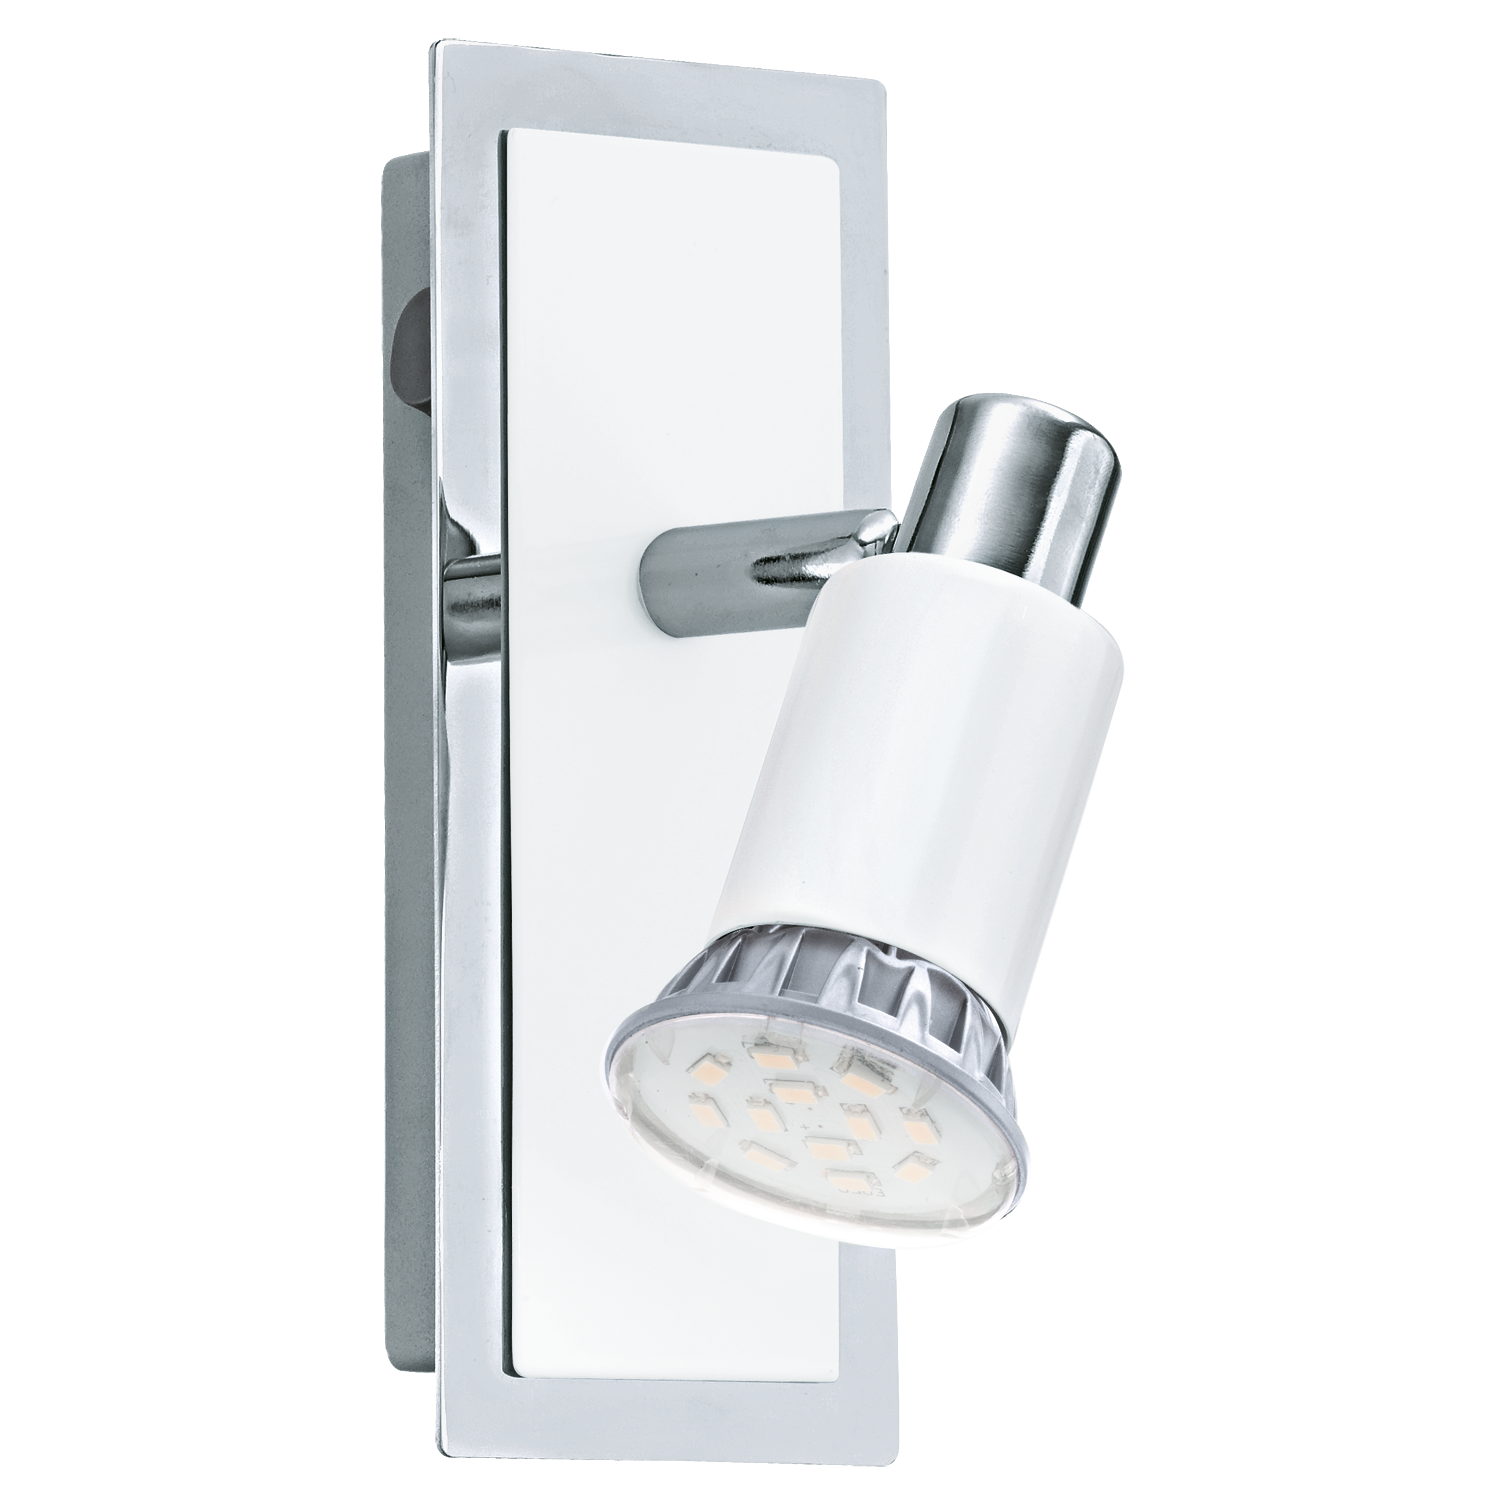 Eglo Spot / wandlamp | 1 x 5 Watt | 70 x 165 mm | LED ERIDAN | Wit / Chroom